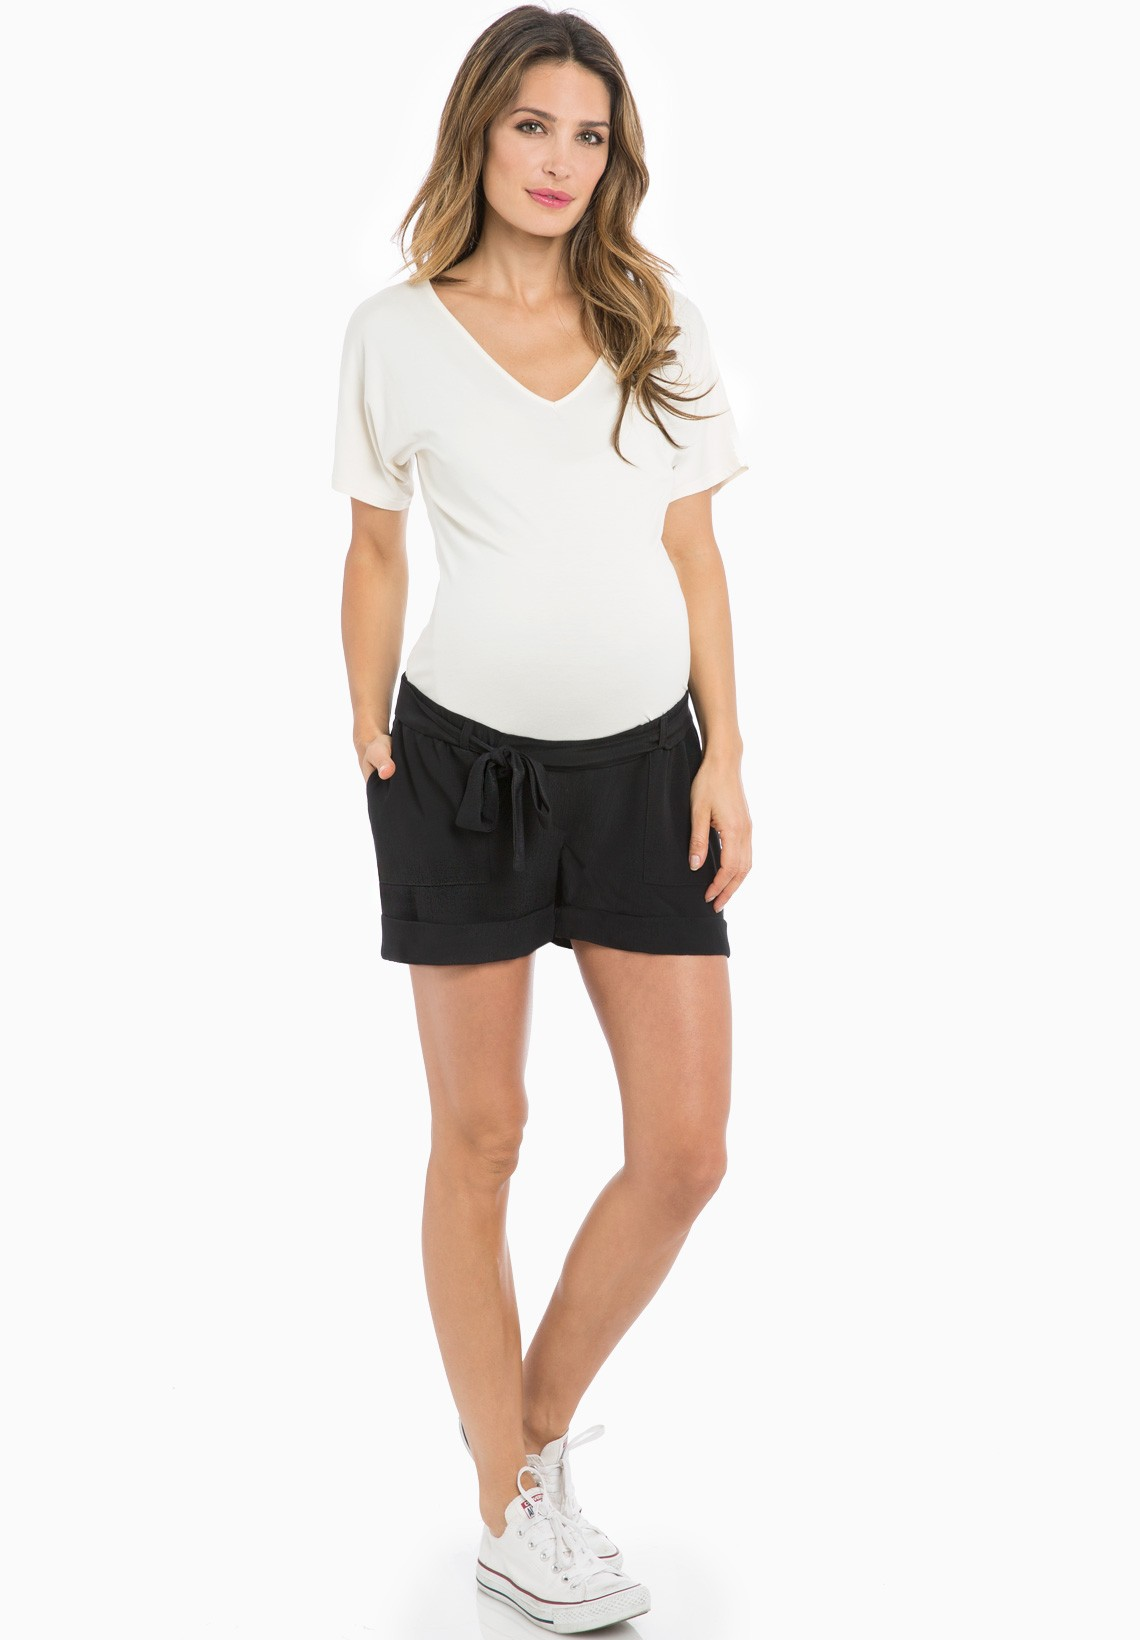 Maternity Clothing. Whether you're expecting or buying a gift for your favorite mom-to-be, LOFT is your one-stop-shop for maternity clothing. We have the prettiest maternity dresses & polished maternity work clothes for the office, maternity jeans & maternity shirts for the weekend.